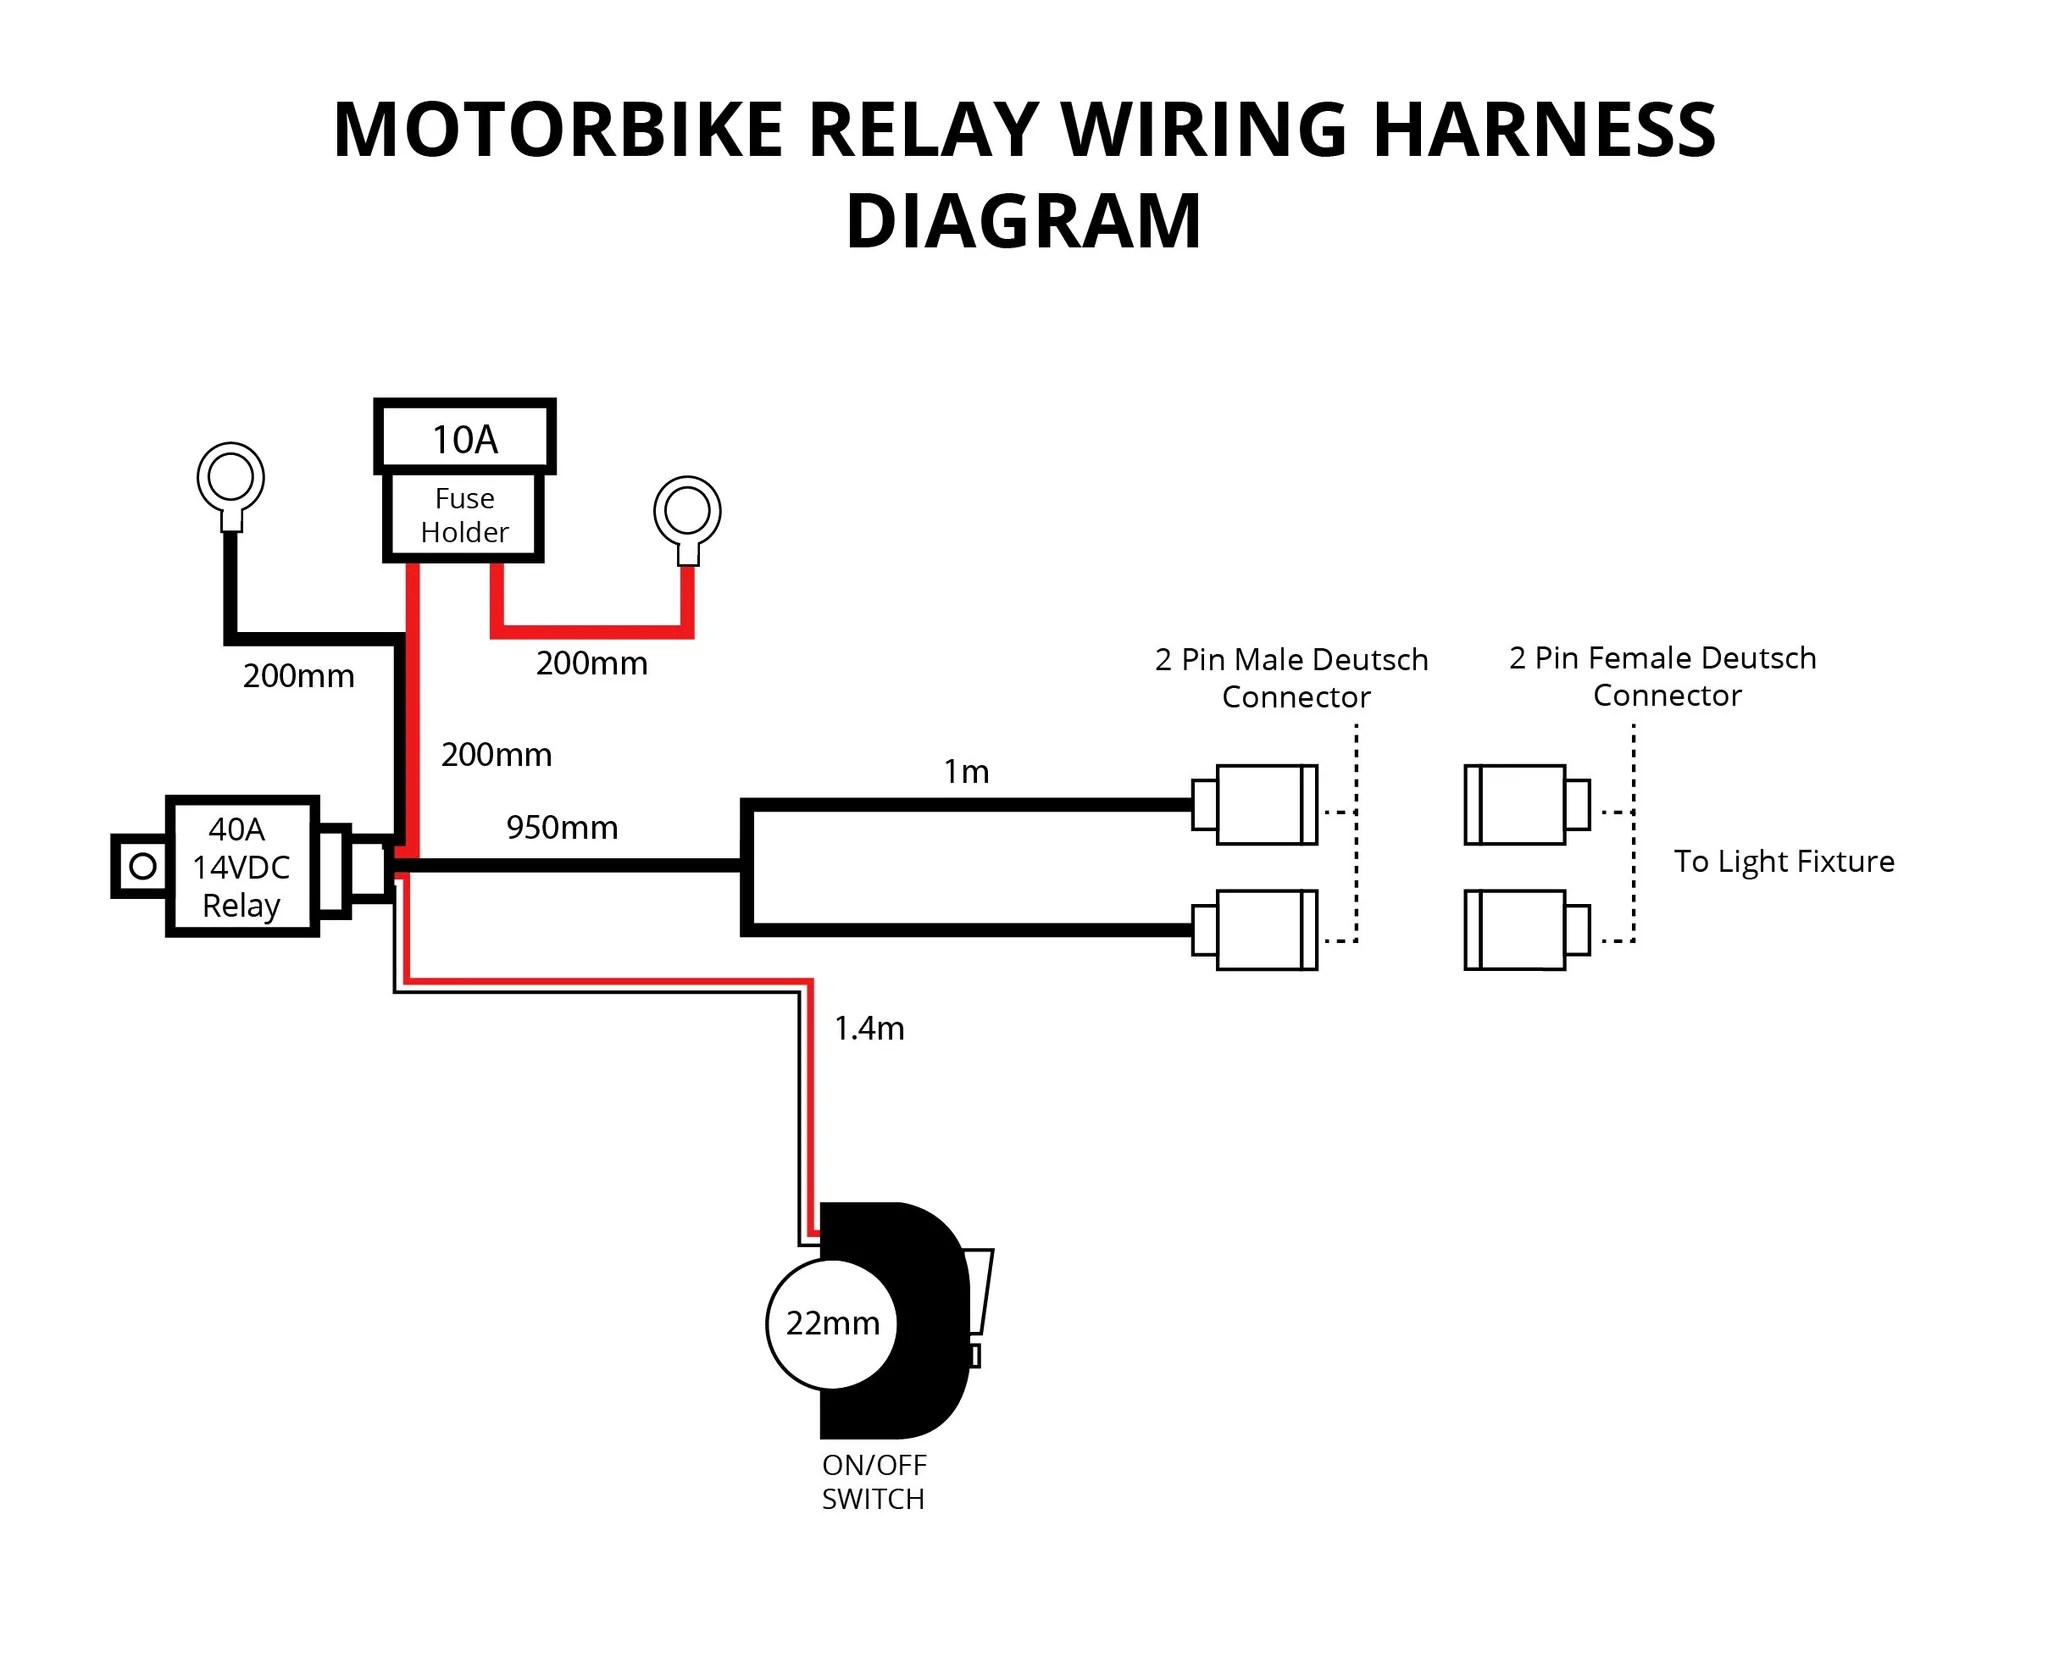 small resolution of piaa relay wiring diagram for lights marlin glenfield 60 piaa relay switch piaa relay switch